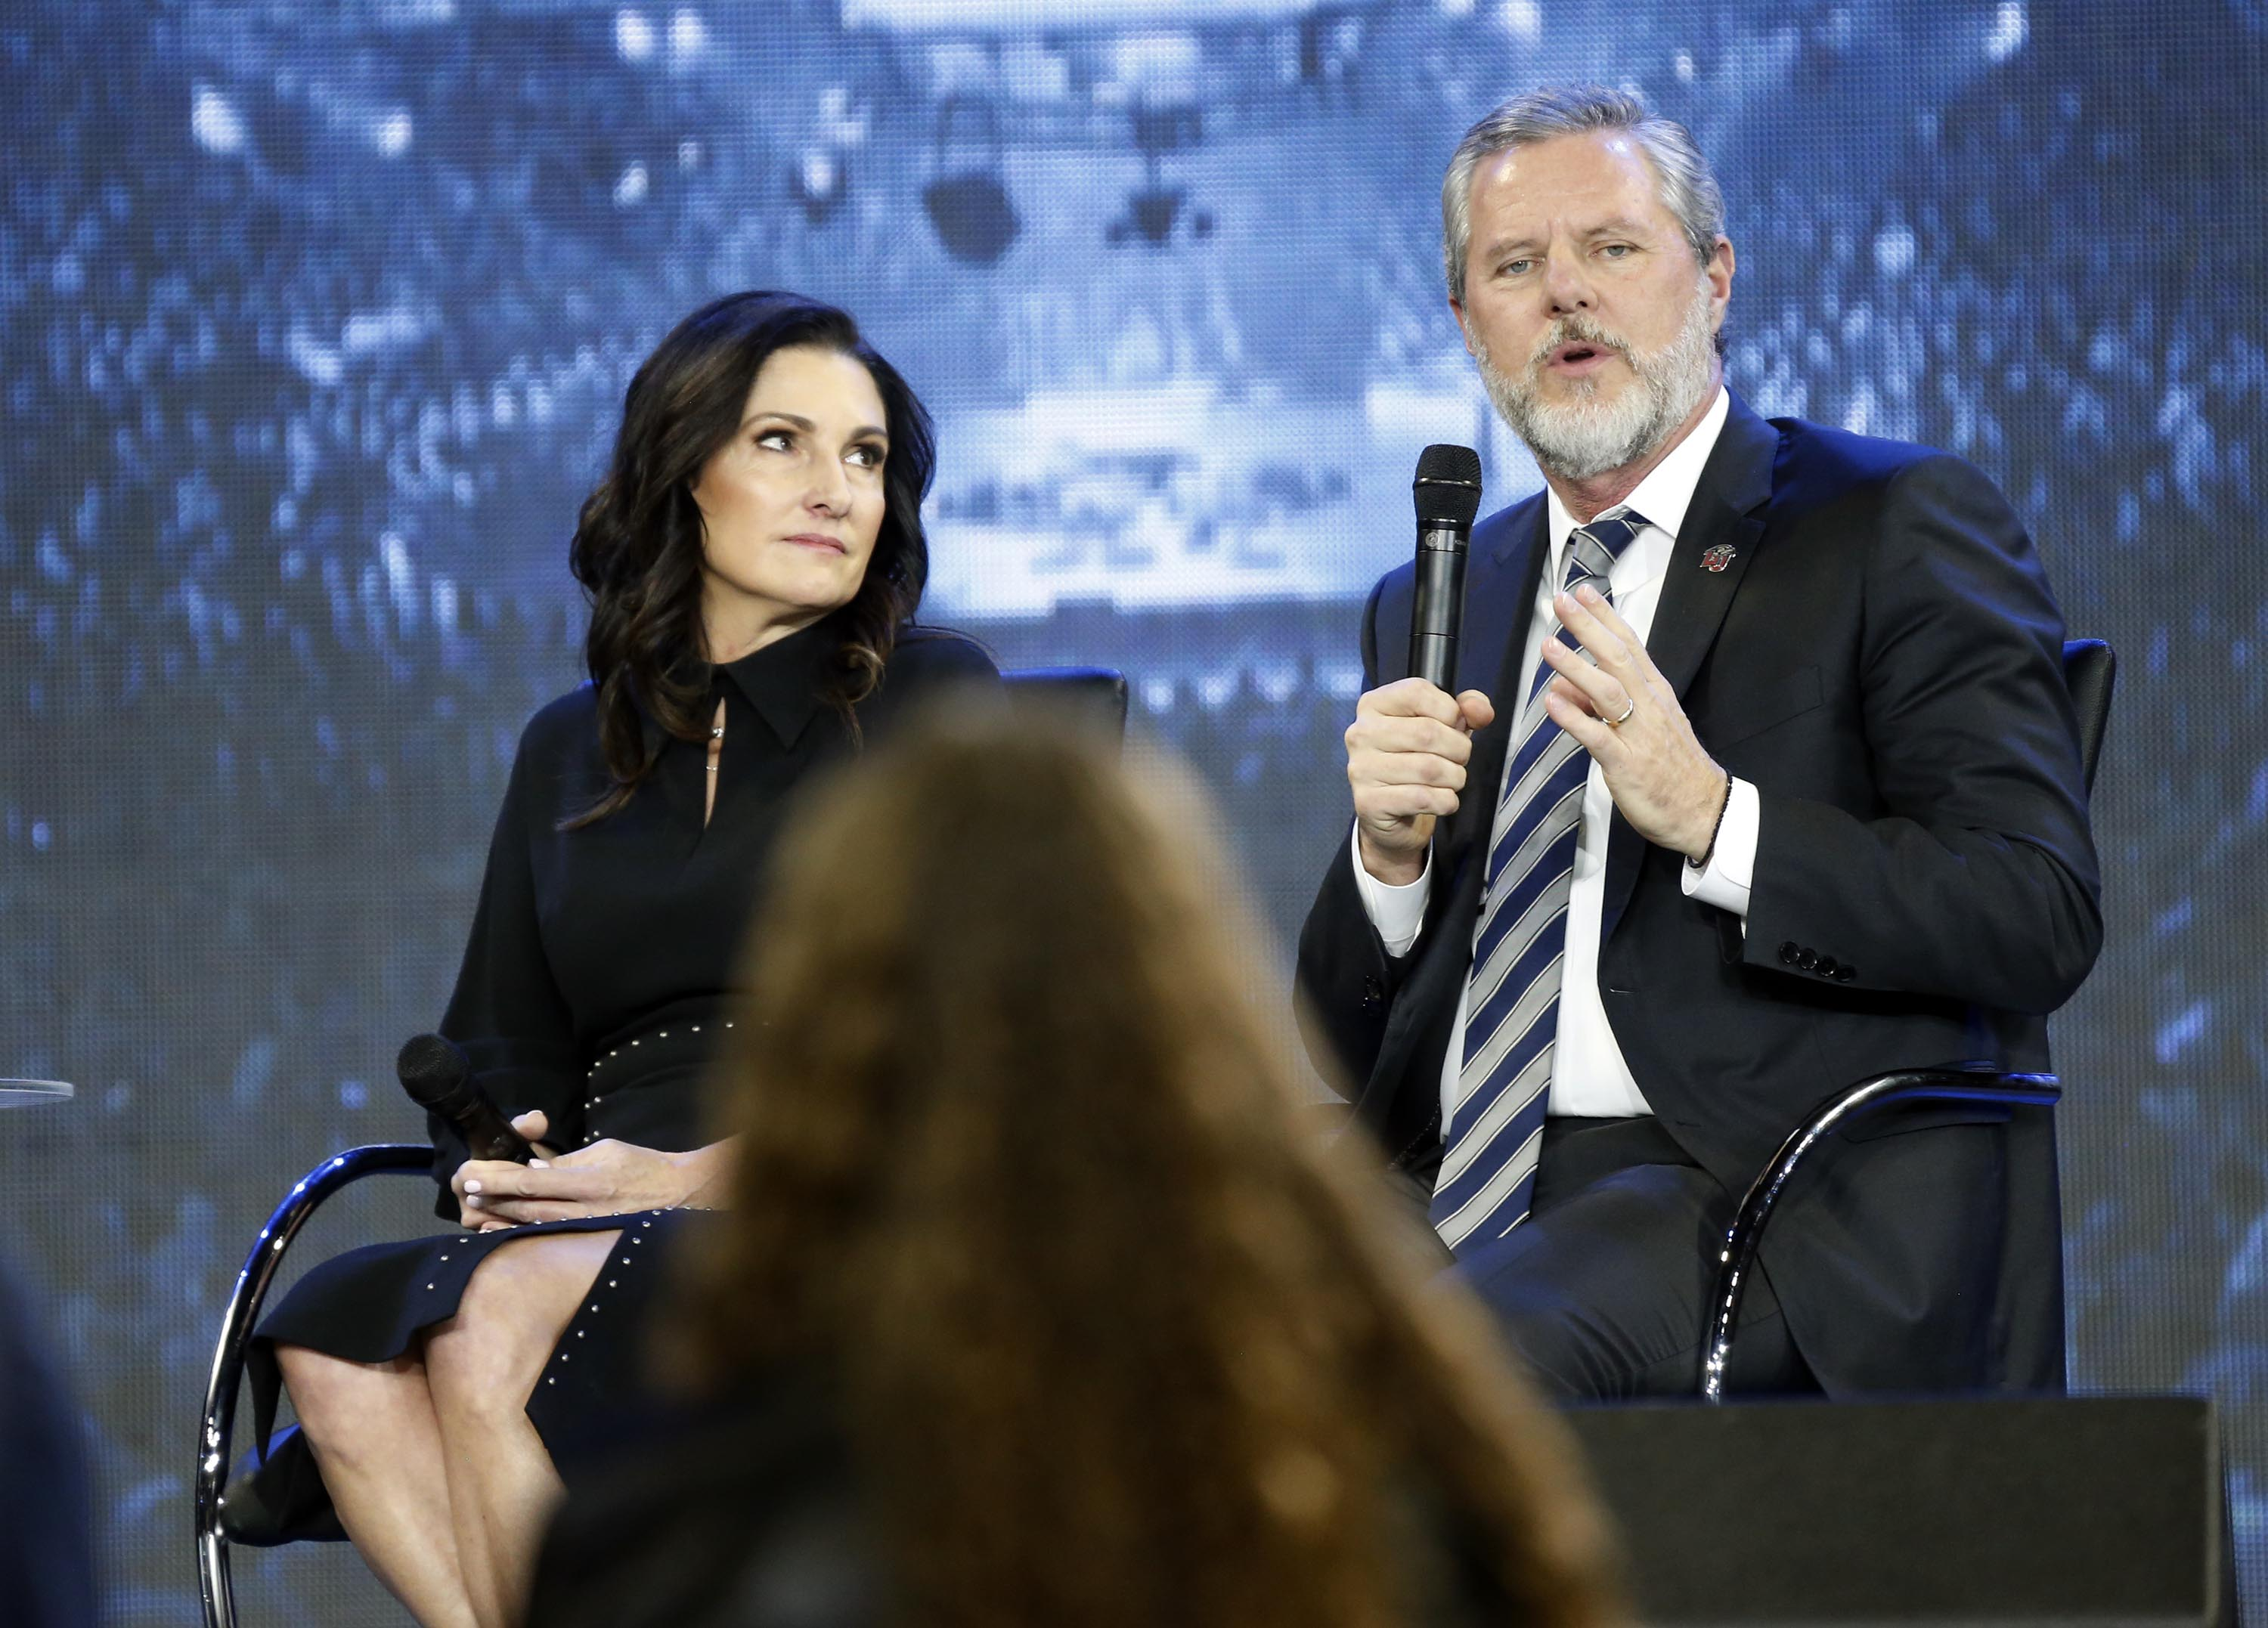 FILE - In this Nov. 28, 2018 file photo, Jerry Falwell Jr., right, answers a students question accompanied by his wife, Becki, during after a town hall on the opioid crisis at a convocation at Liberty University in Lynchburg, Va. Jerry Falwell Jr., who leads the prominent evangelical Christian university, apologized in June 2020 after posting a tweet invoking the blackface scandal that engulfed Virginia's governor in 2019. But Falwell's rare show of contrition, which followed a rebuke from nearly three dozen Black Liberty alumni, has left many African American students, alumni and staff unconvinced of his interest in helping the school live up to its promises about diversity. (AP Photo/Steve Helber, File)